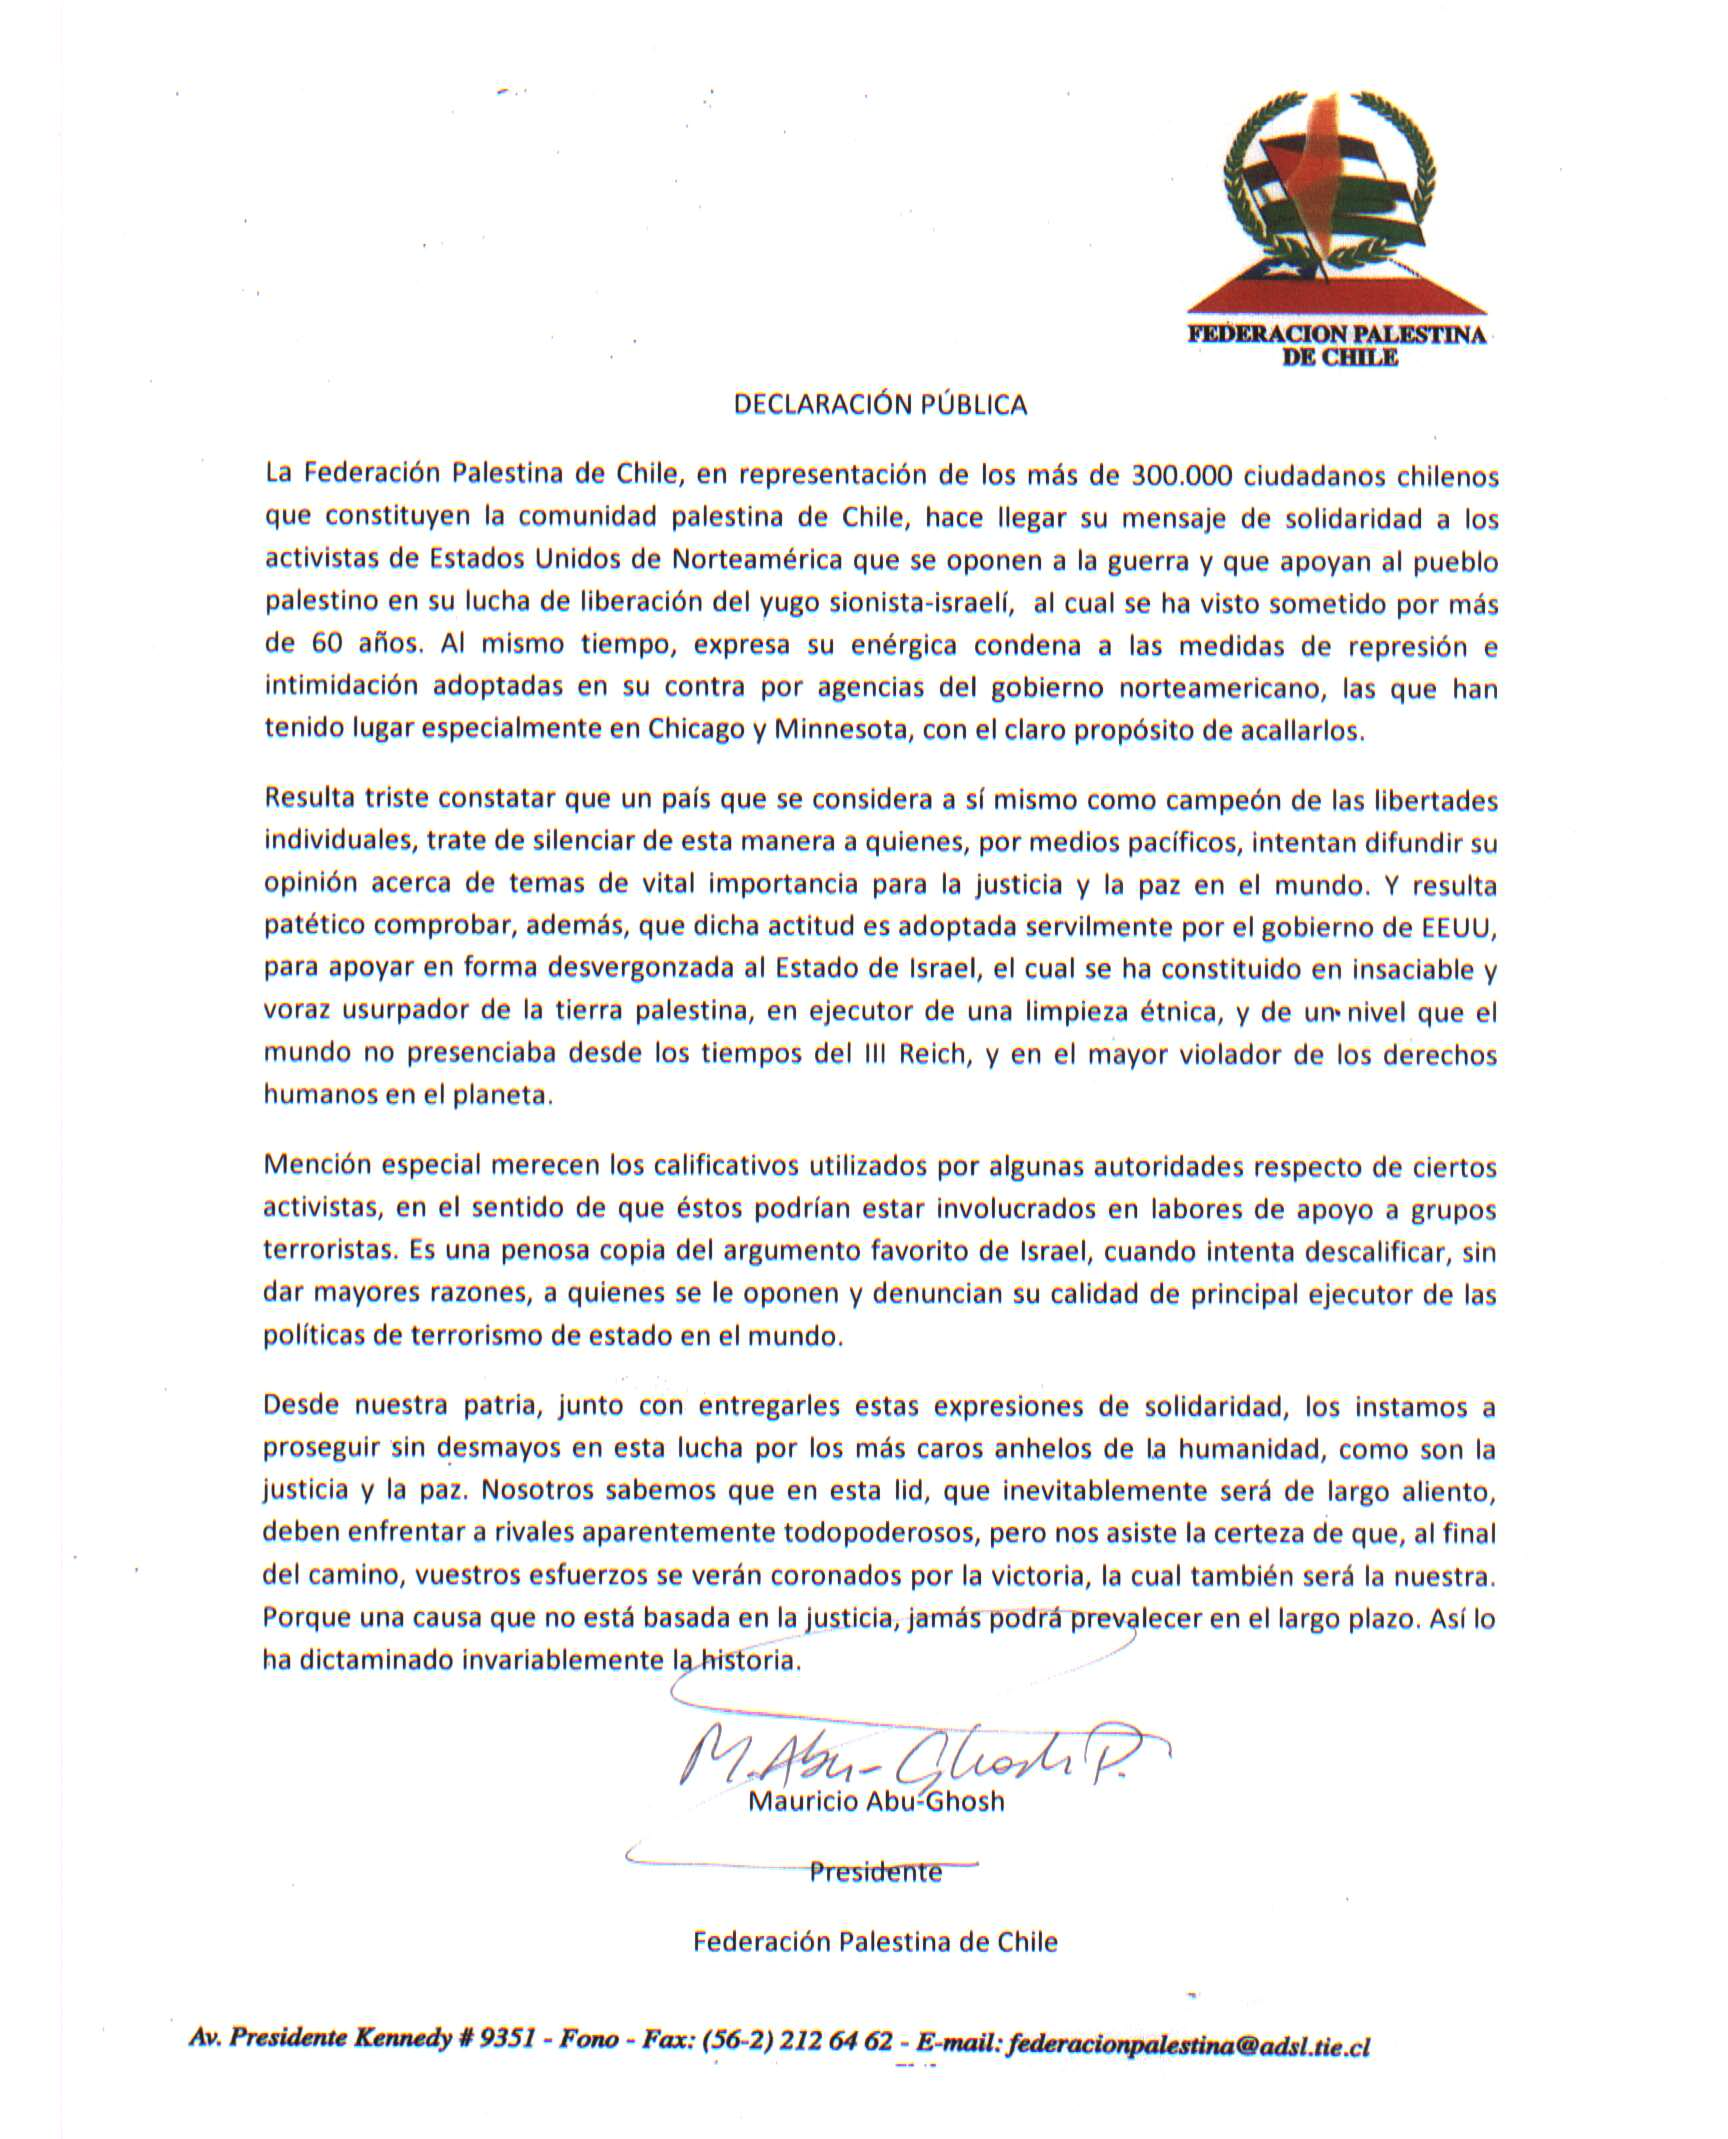 Public Declaration from the Palestinian Federation of Chile